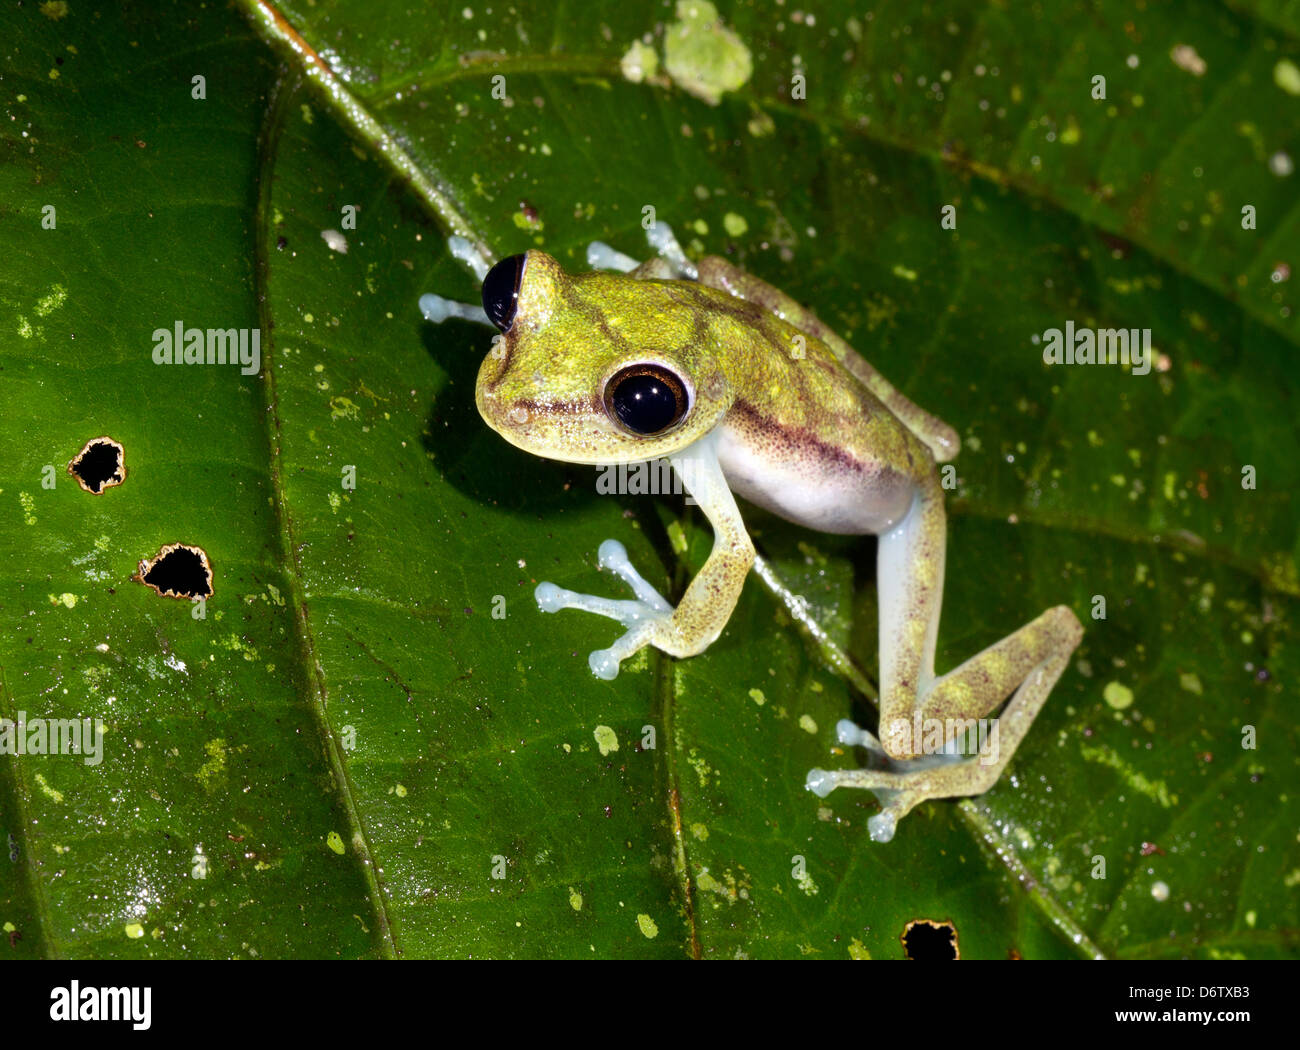 Nymph Treefrog (Hypsiboas nympha) on a leaf in the rainforest understory, Ecuador Stock Photo